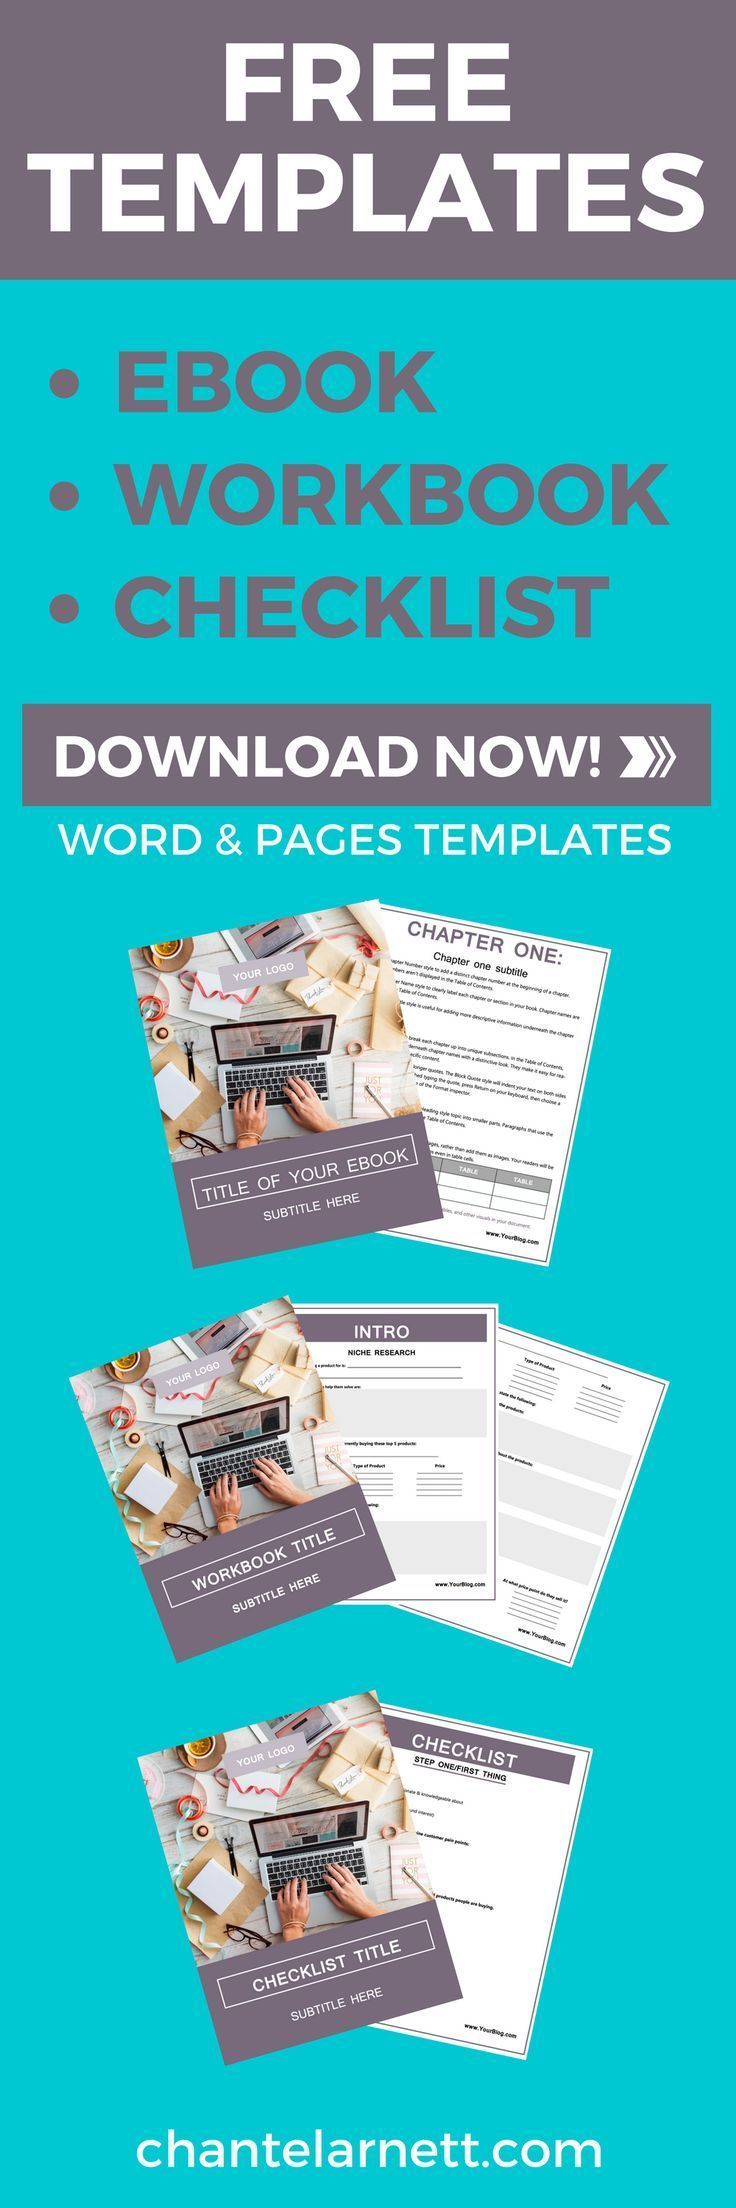 FREE EDITABLE TEMPLATES! Have you always wanted to create